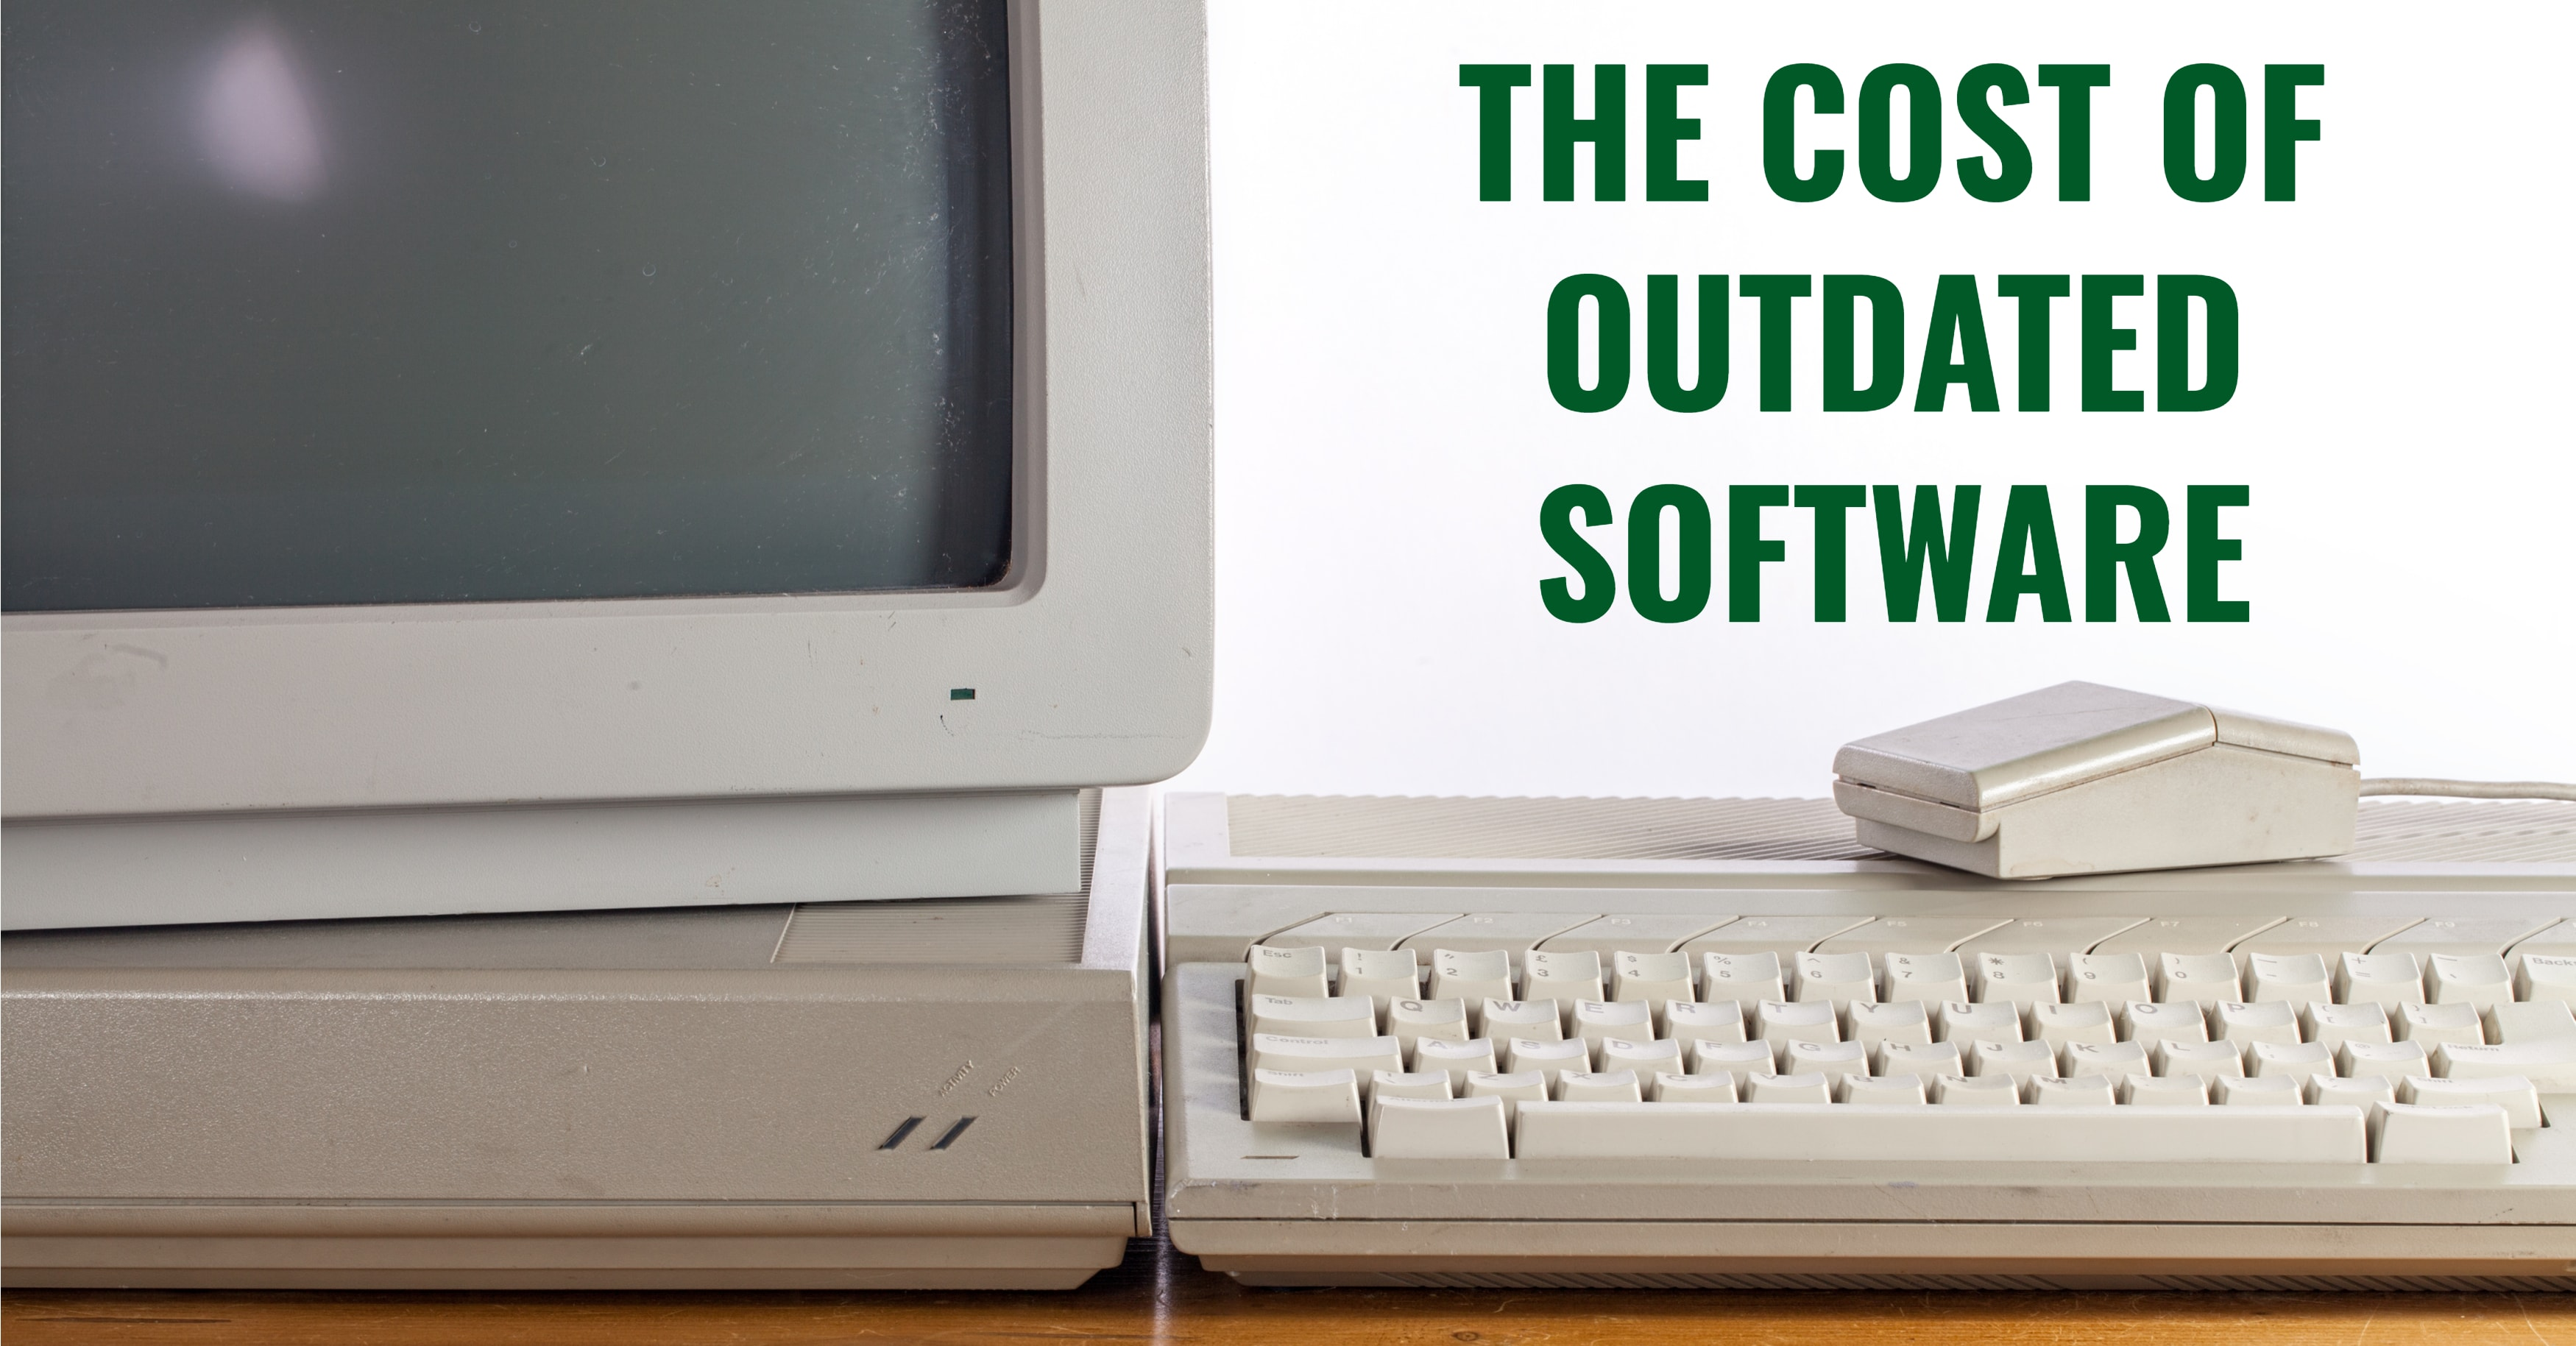 Cost Outdated Software